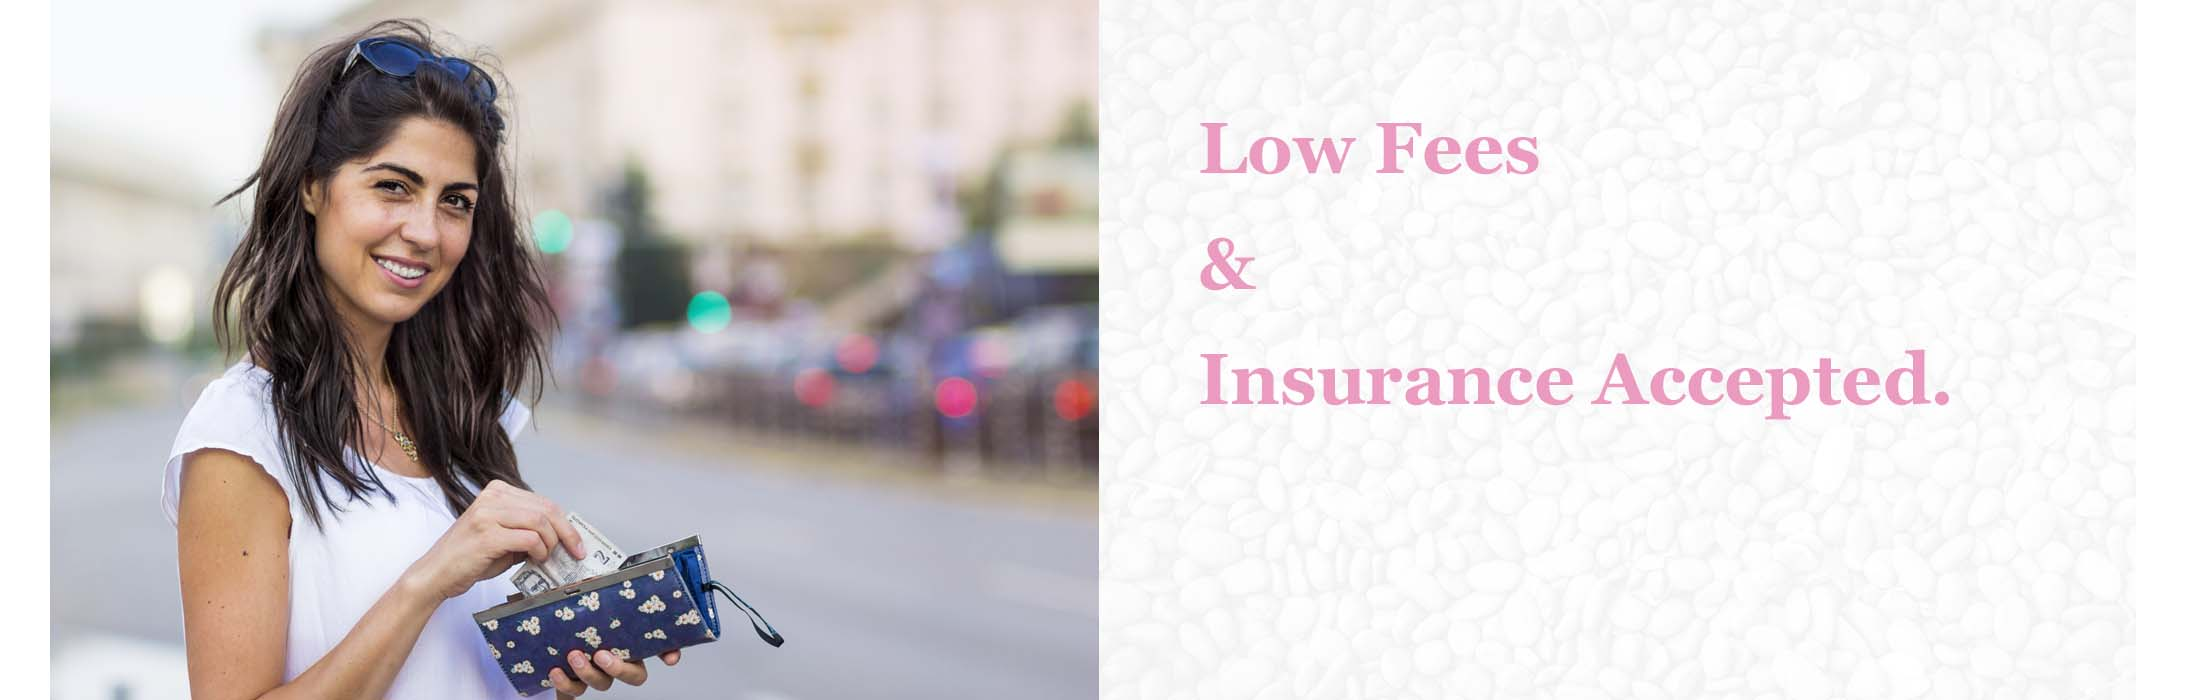 Low Fees & Insurance Accepted.